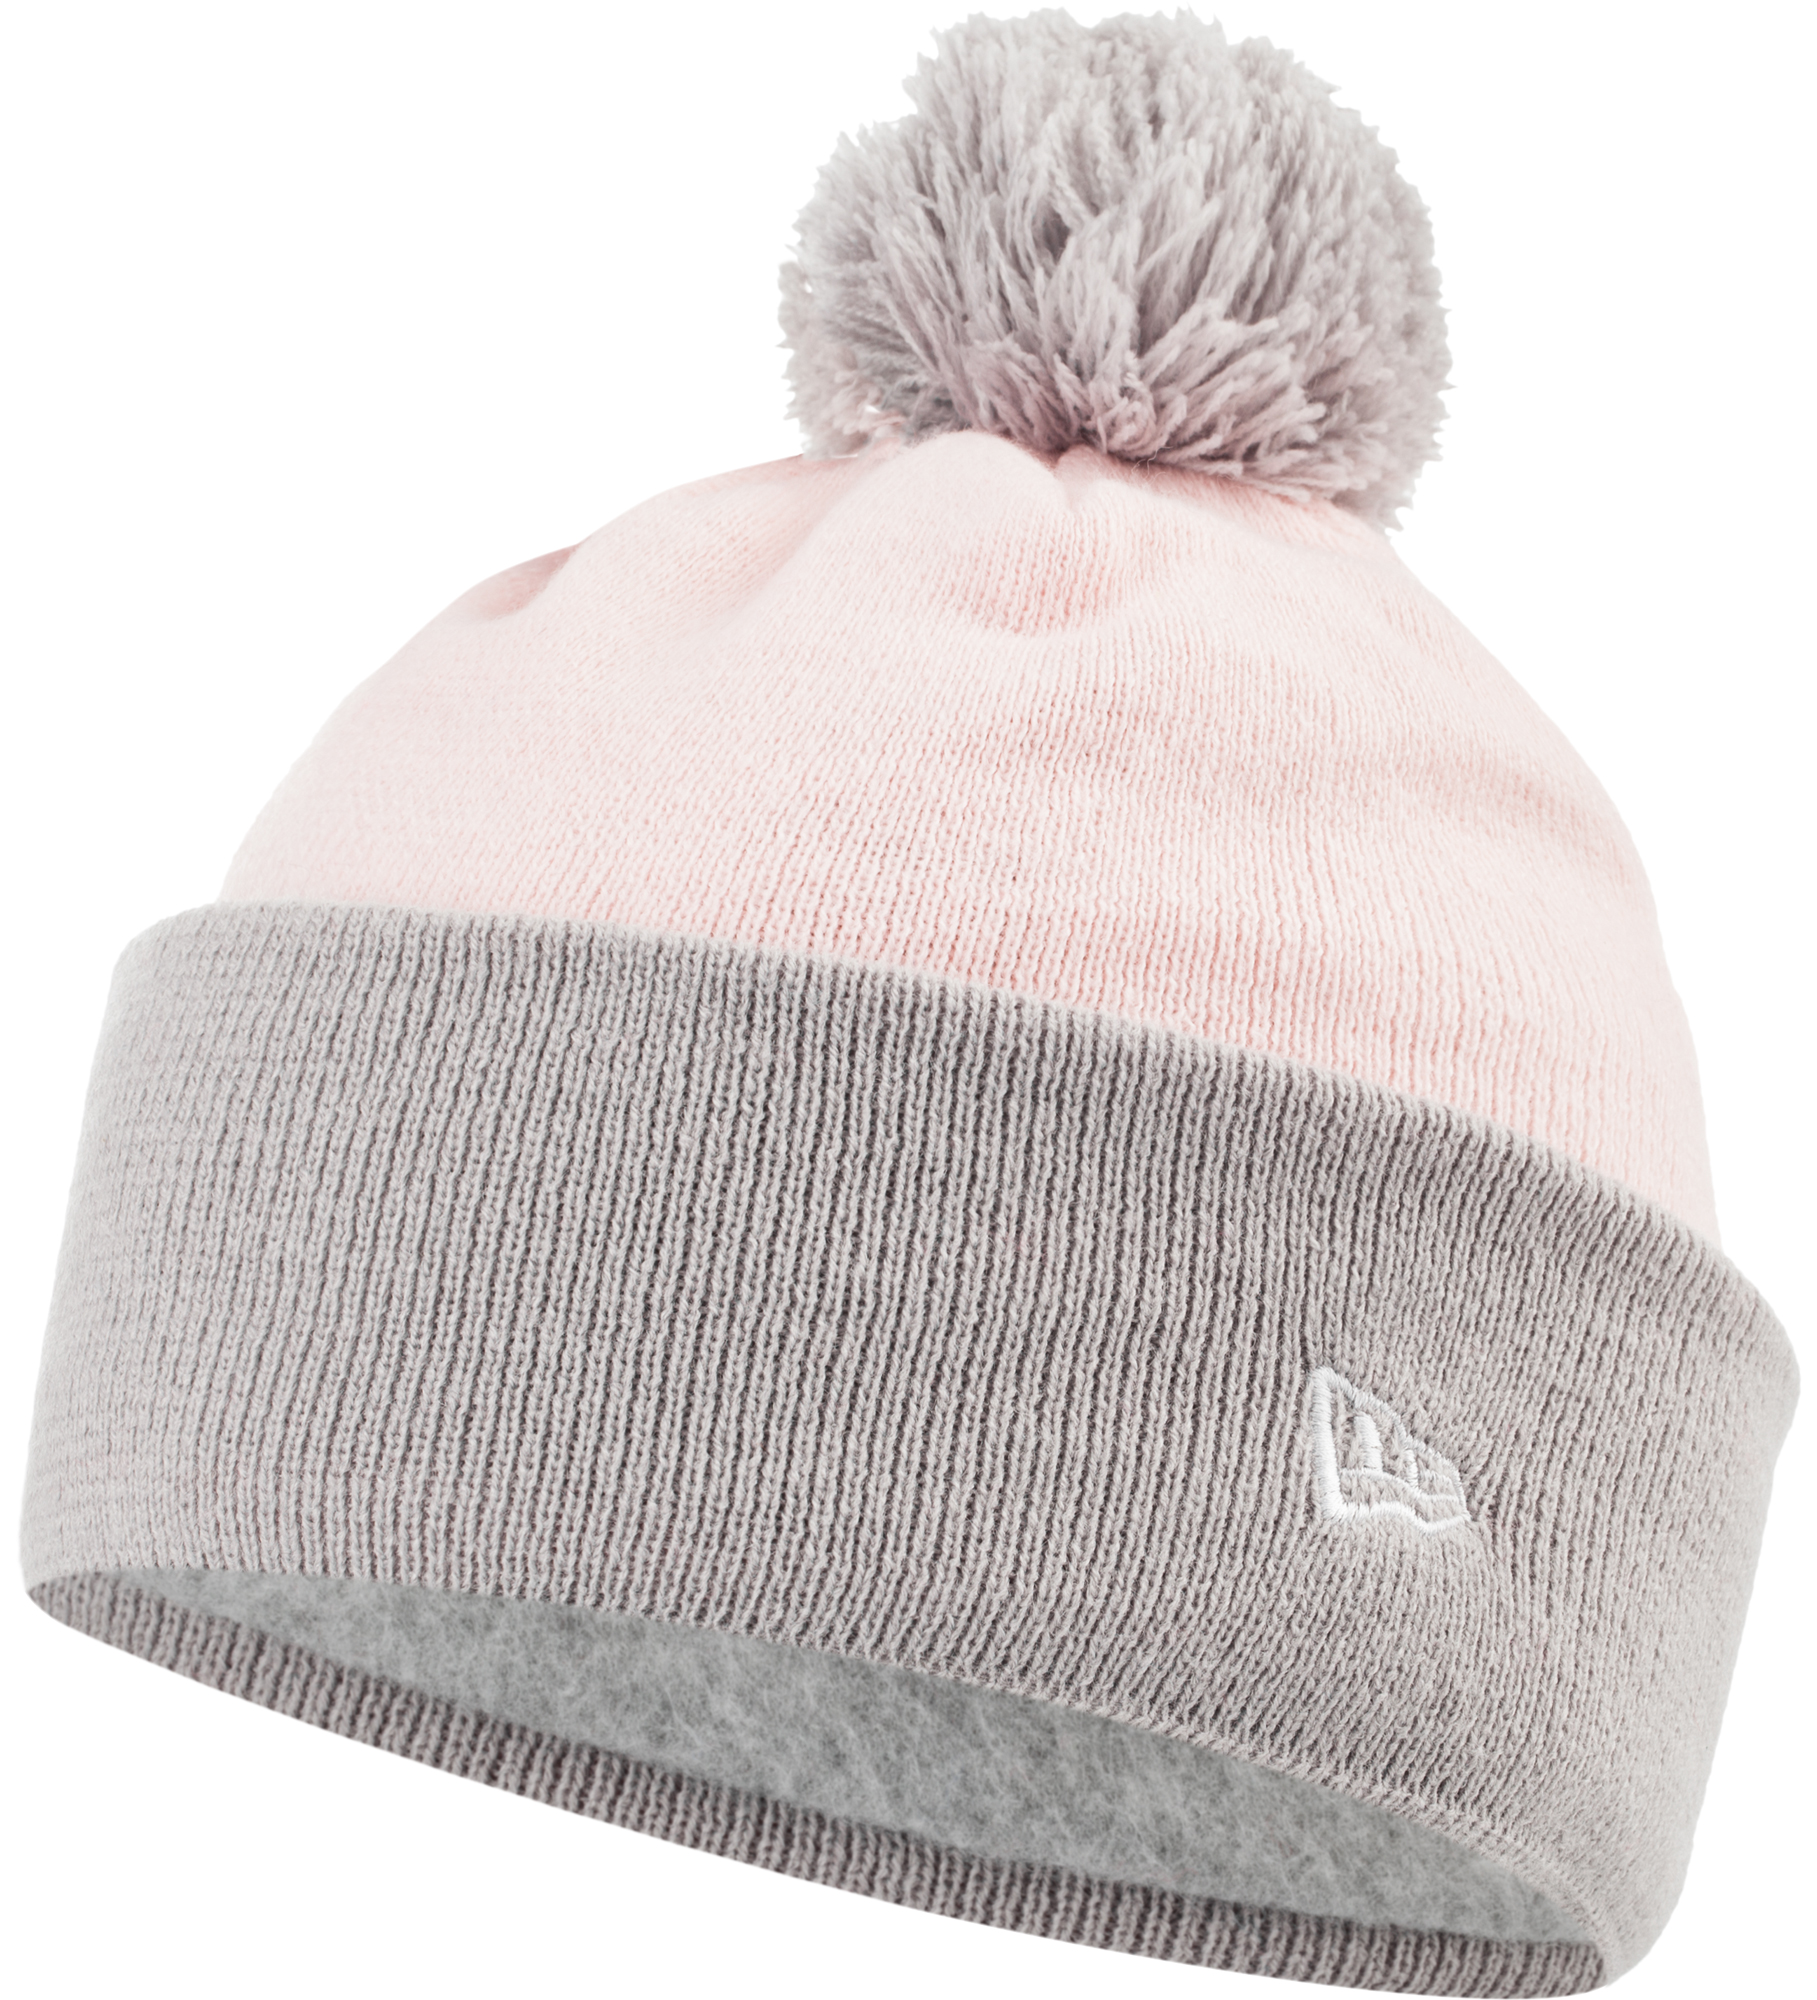 New Era Шапка для девочек New Era Cuff Pom Knit Newera, размер 54-55 цена